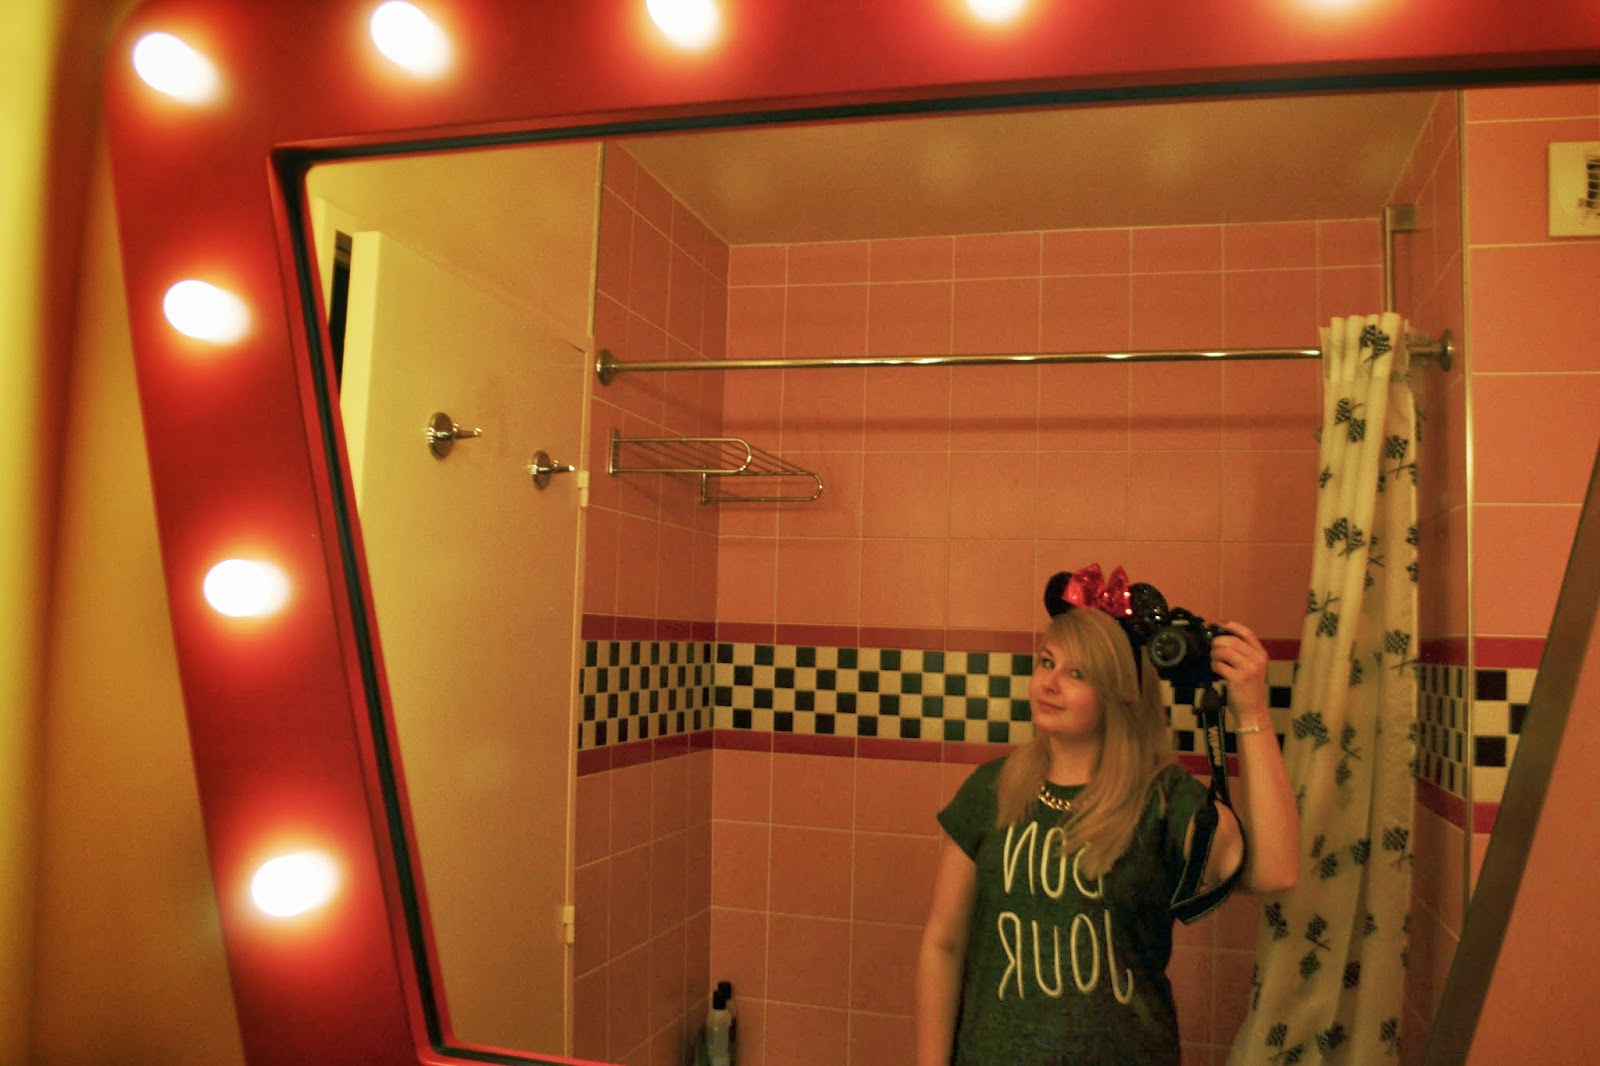 a mirror selfie in our hotel room. The bathroom mirror is lined with old style lightbulbs